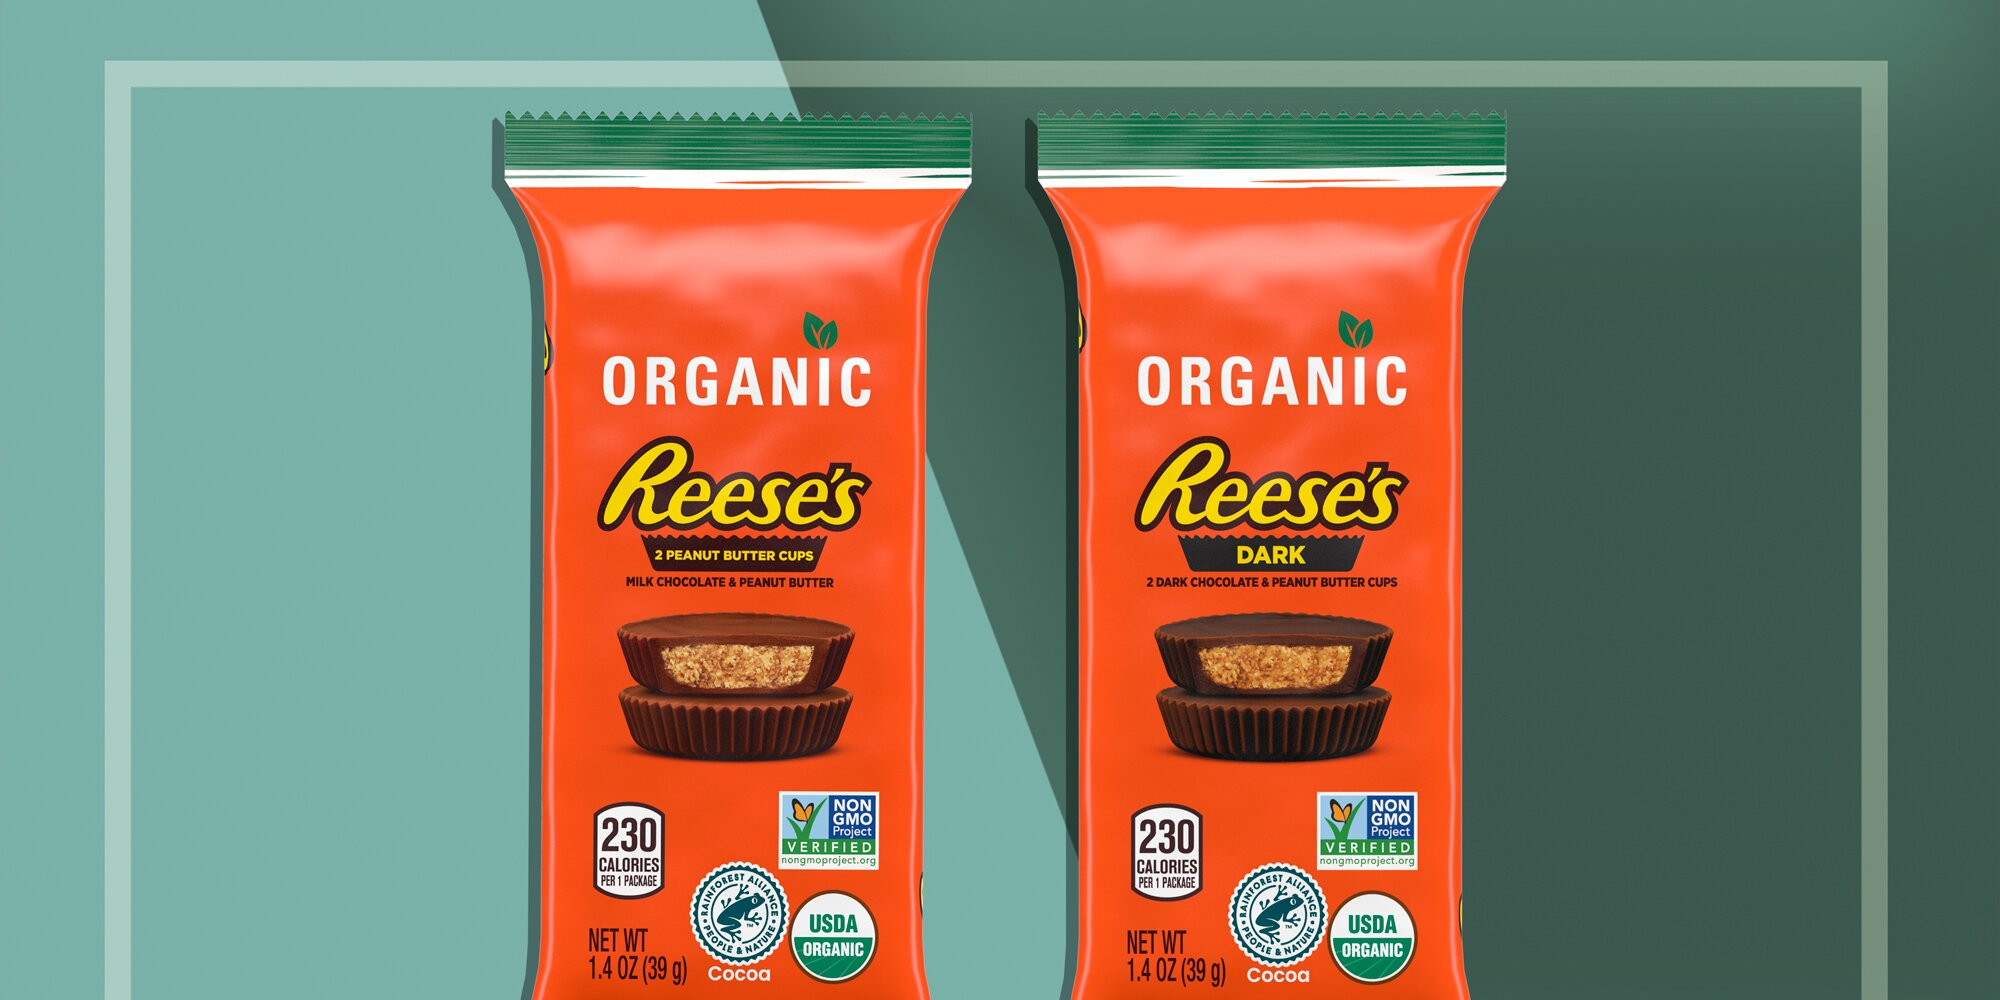 Organic Reese's Peanut Butter Cups Are Headed to the Candy Aisle